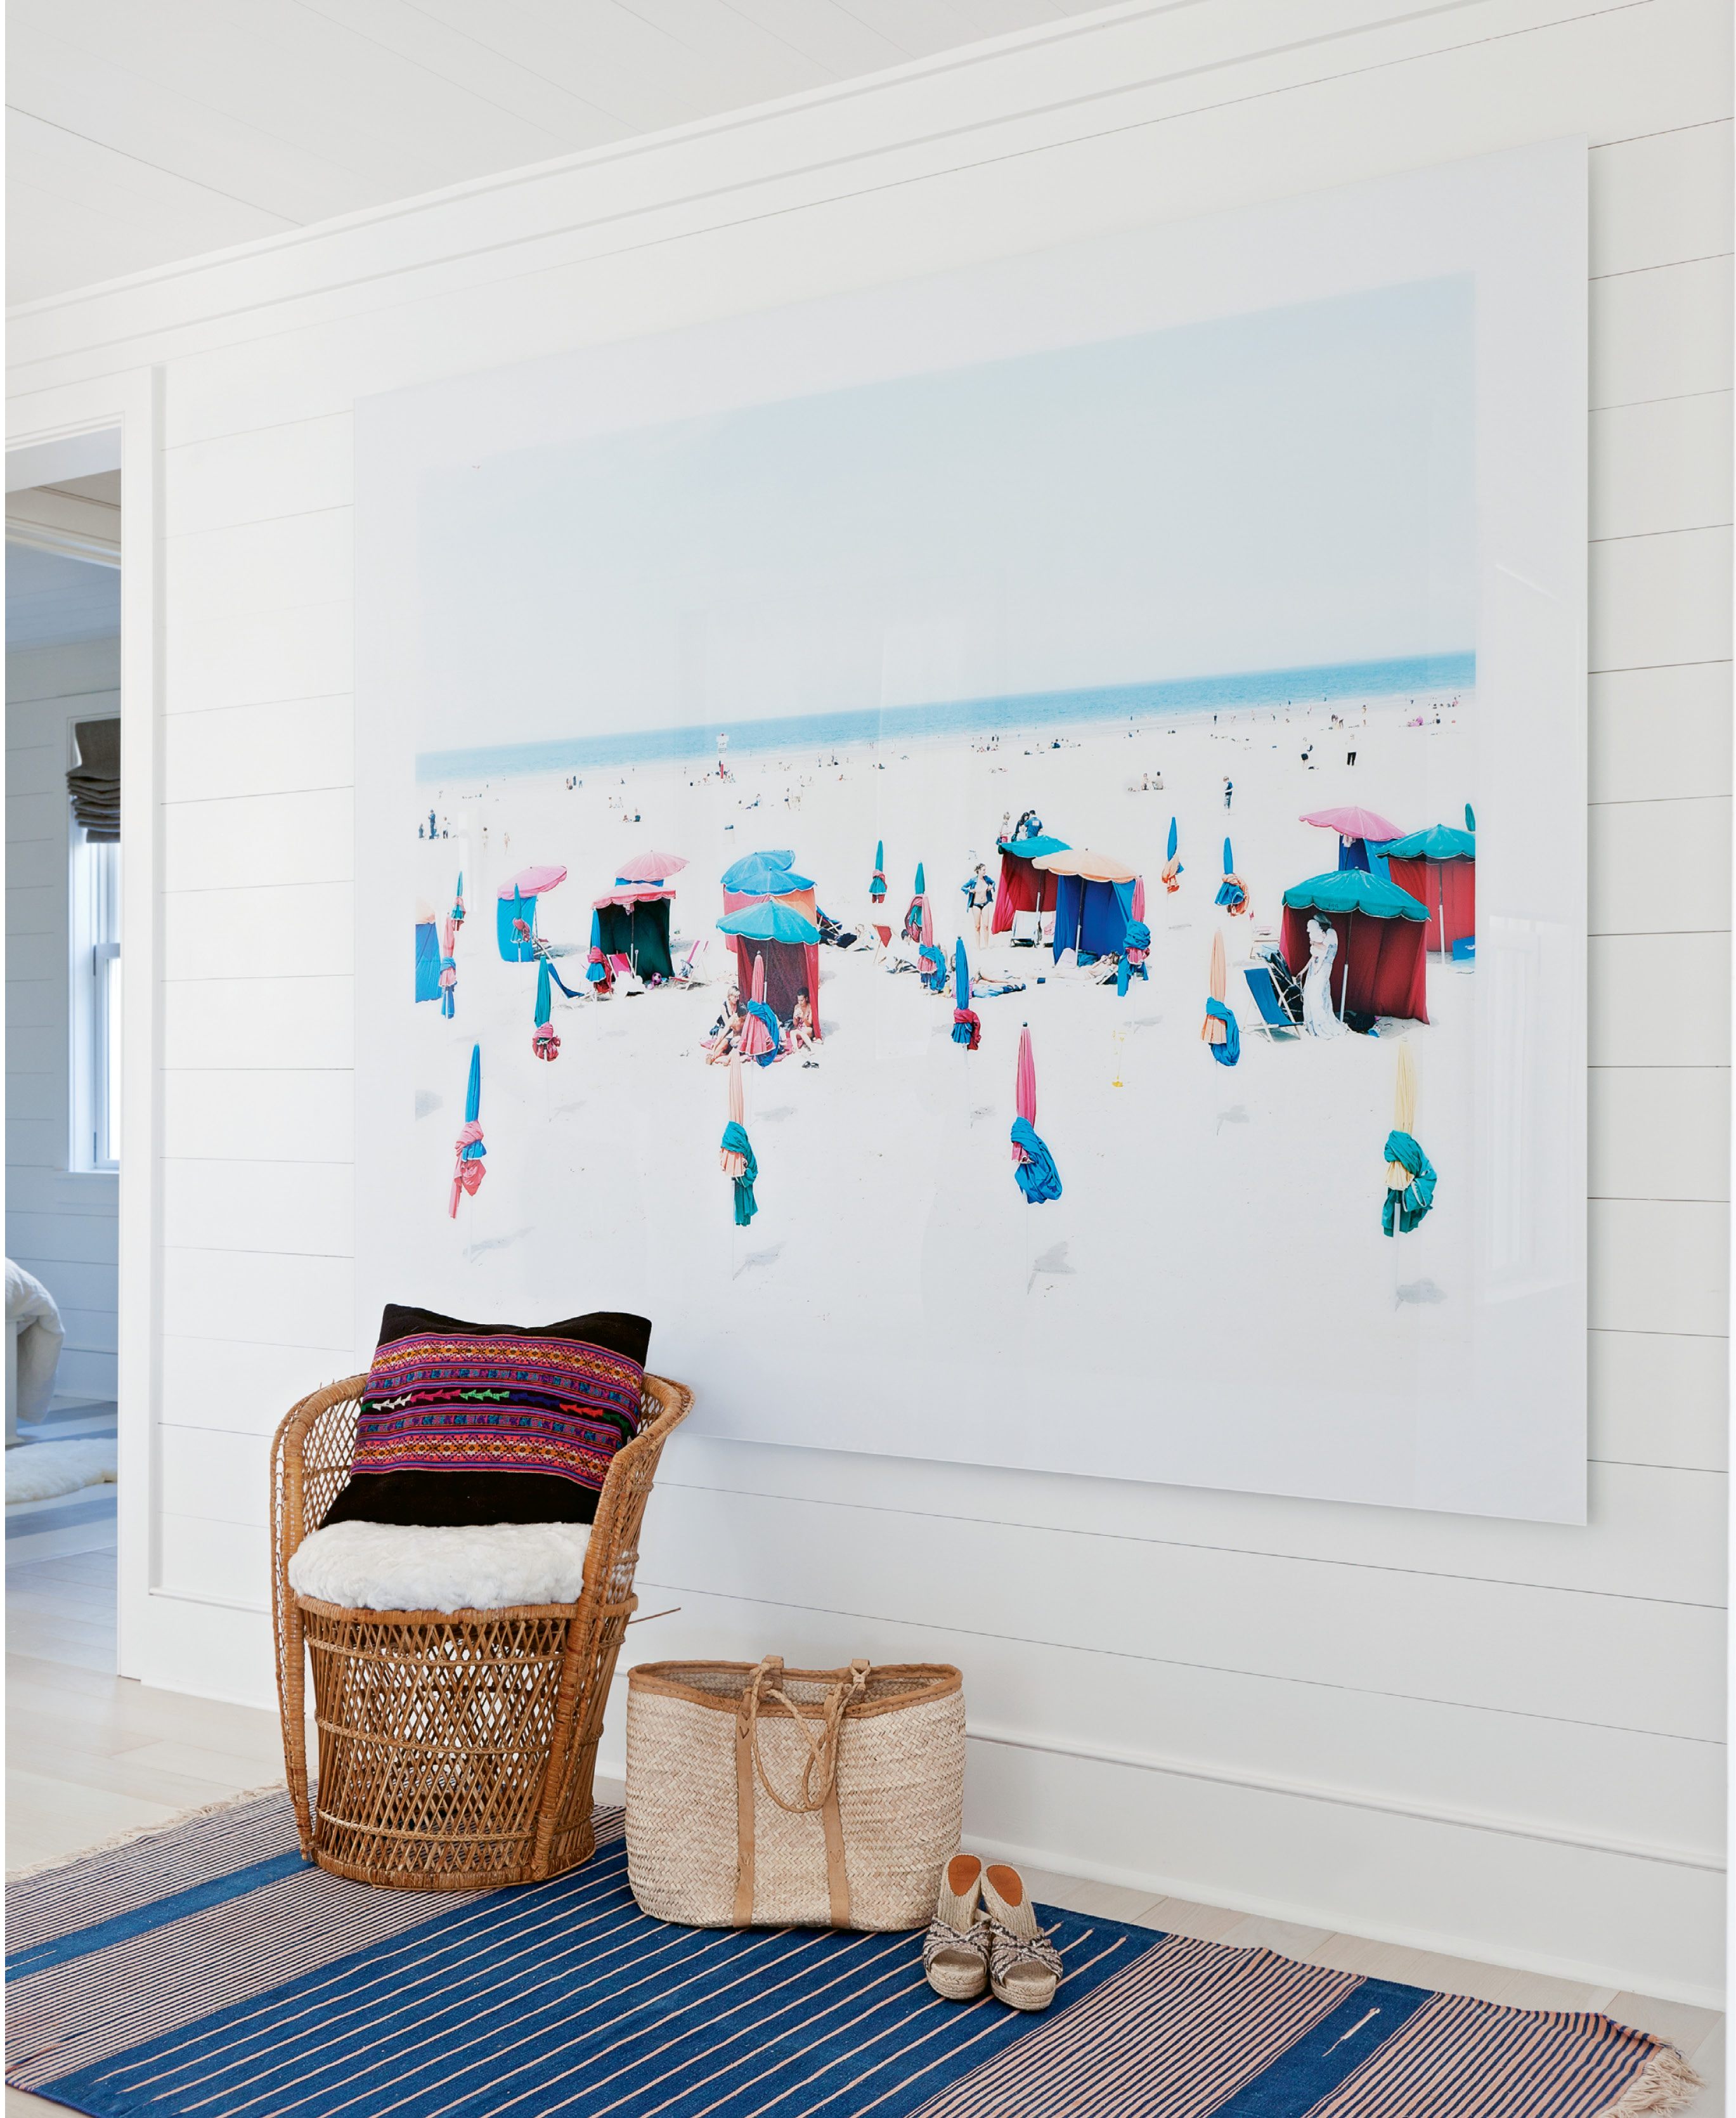 The rooms are filled with fun-in-the-sun decor and artworks, such as this panorama by Italian photographer Massimo Vitali.